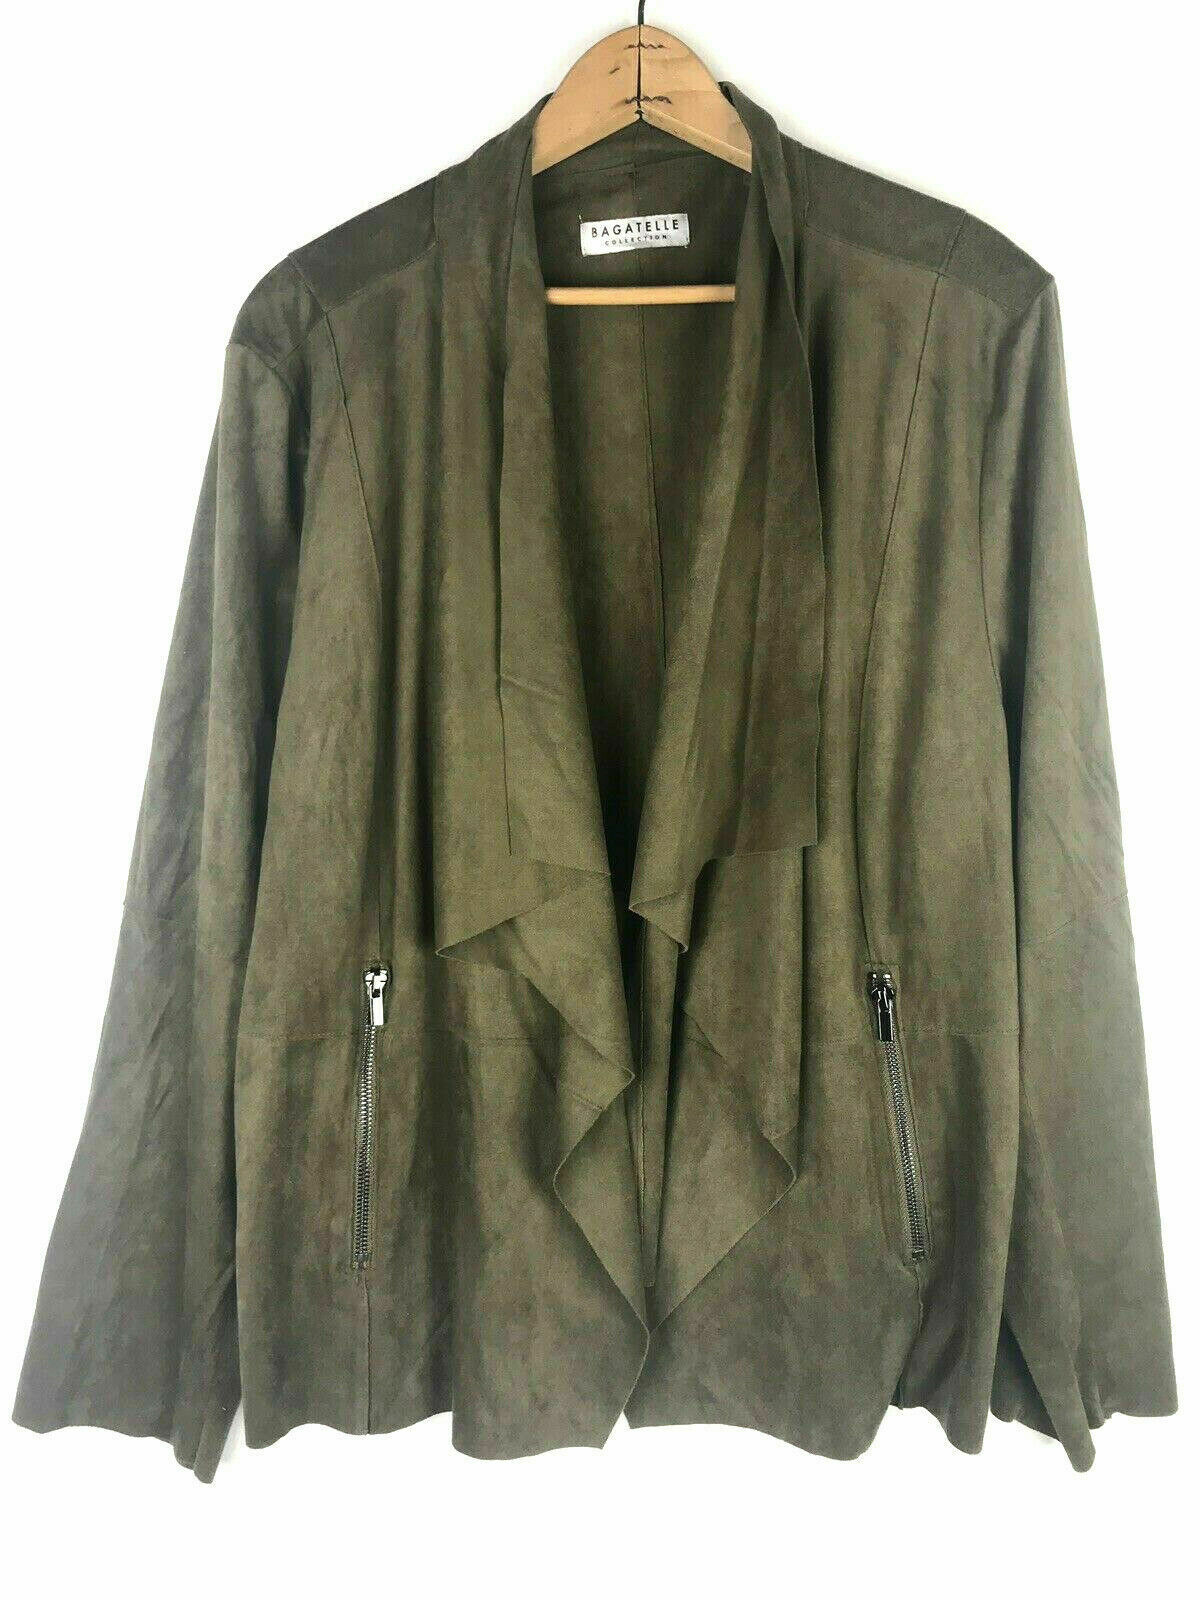 Bagatelle 3X Micro Suede Jacket Open Front Drapey Olive Army Green Artsy Wrap #1